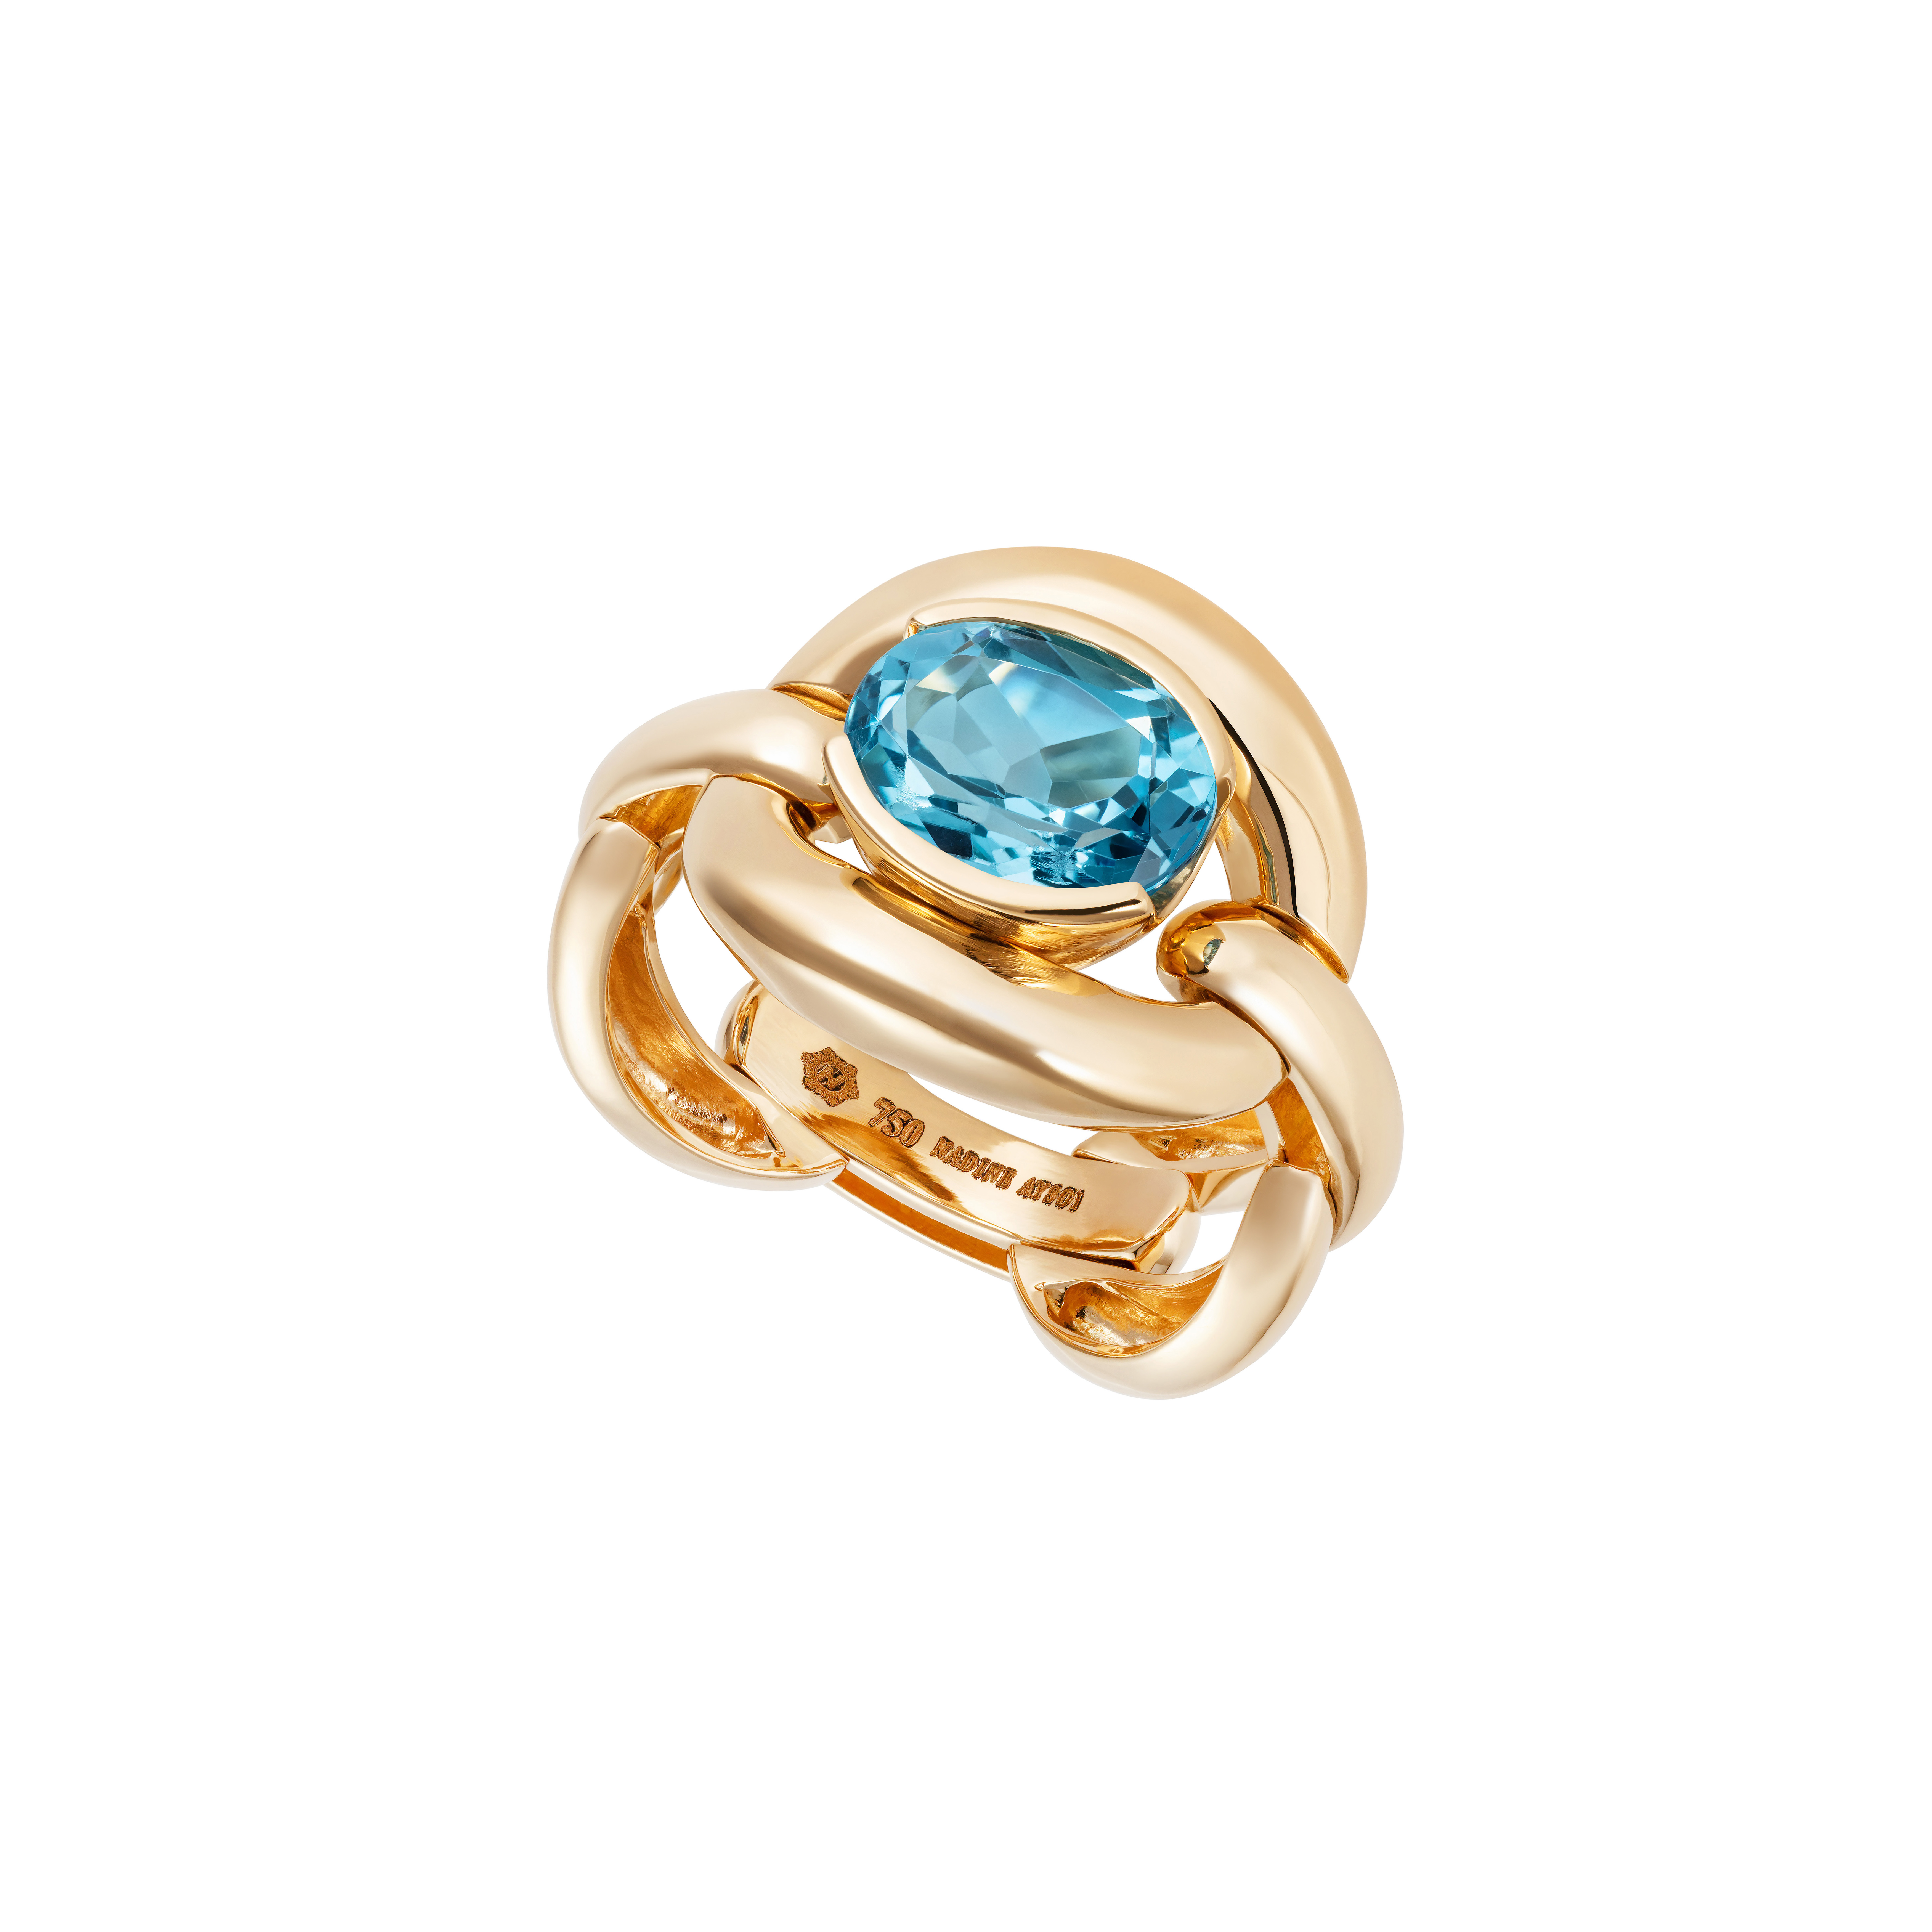 Catena Blue Topaz Ring by Nadine Aysoy on curated-crowd.com